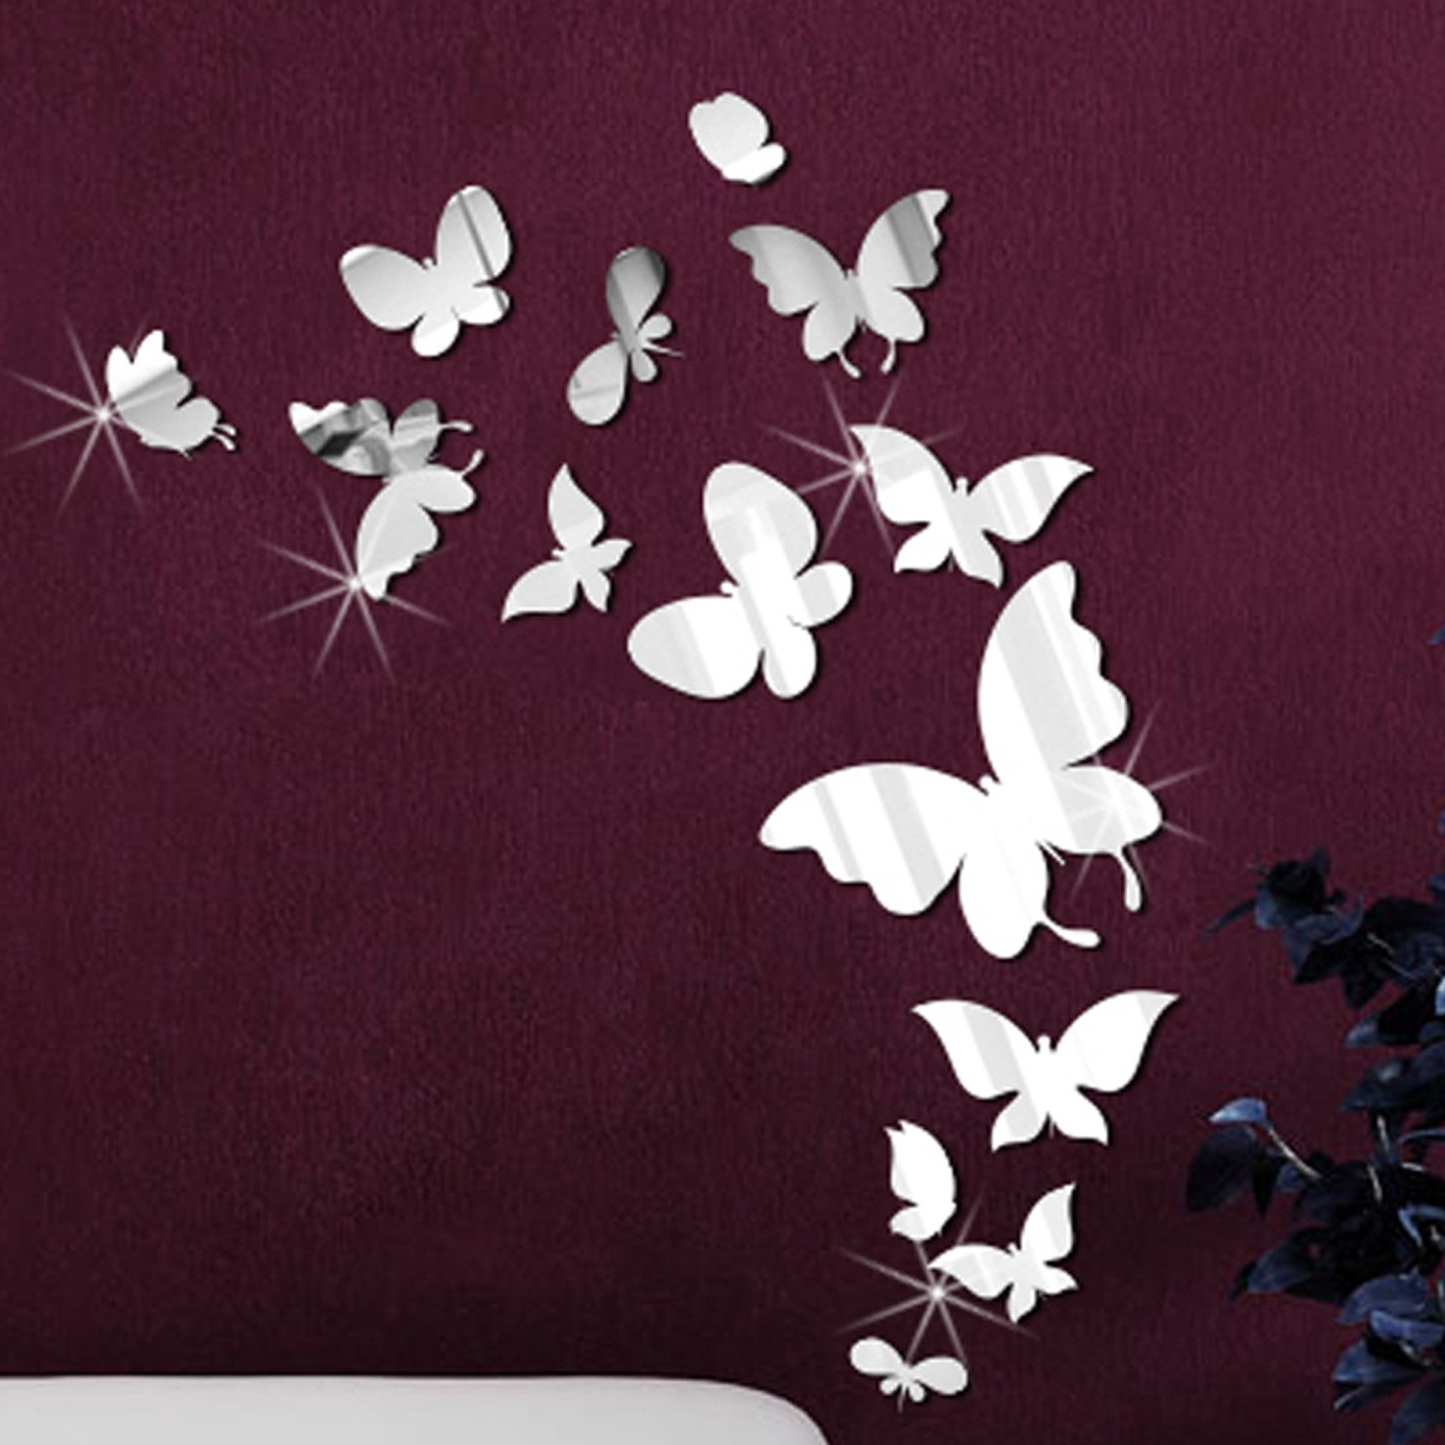 Butterfly Wall Art Pertaining To Most Recently Released Walplus 14 Mirror Butterflies Wall Art Wall Decal & Reviews (View 3 of 15)